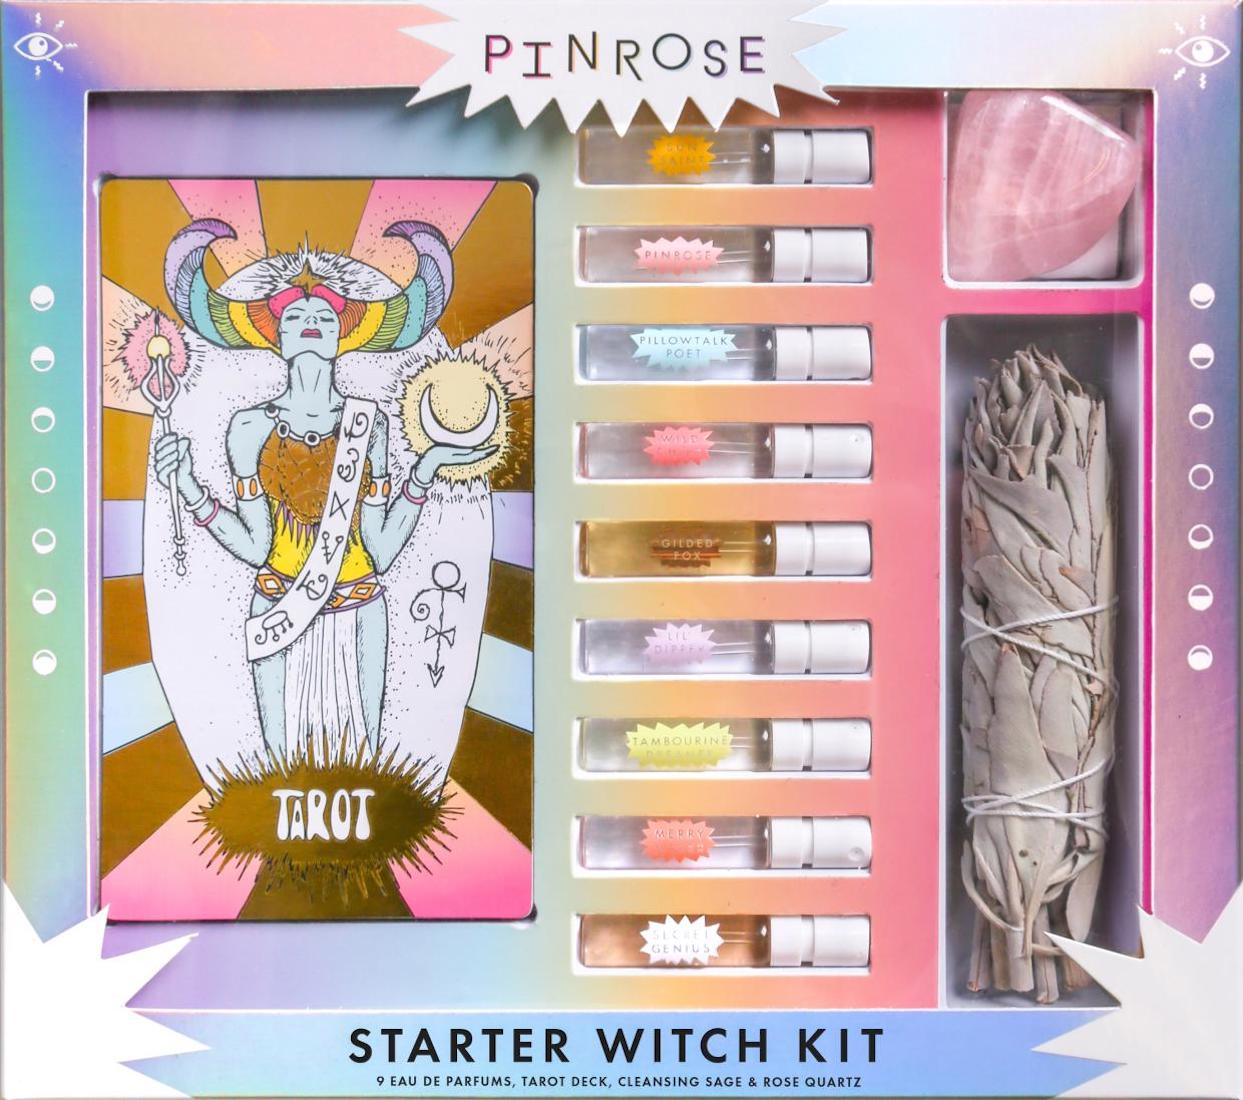 """A real witch told us why she's glad Sephora pulled its controversial """"Starter Witch Kit"""""""